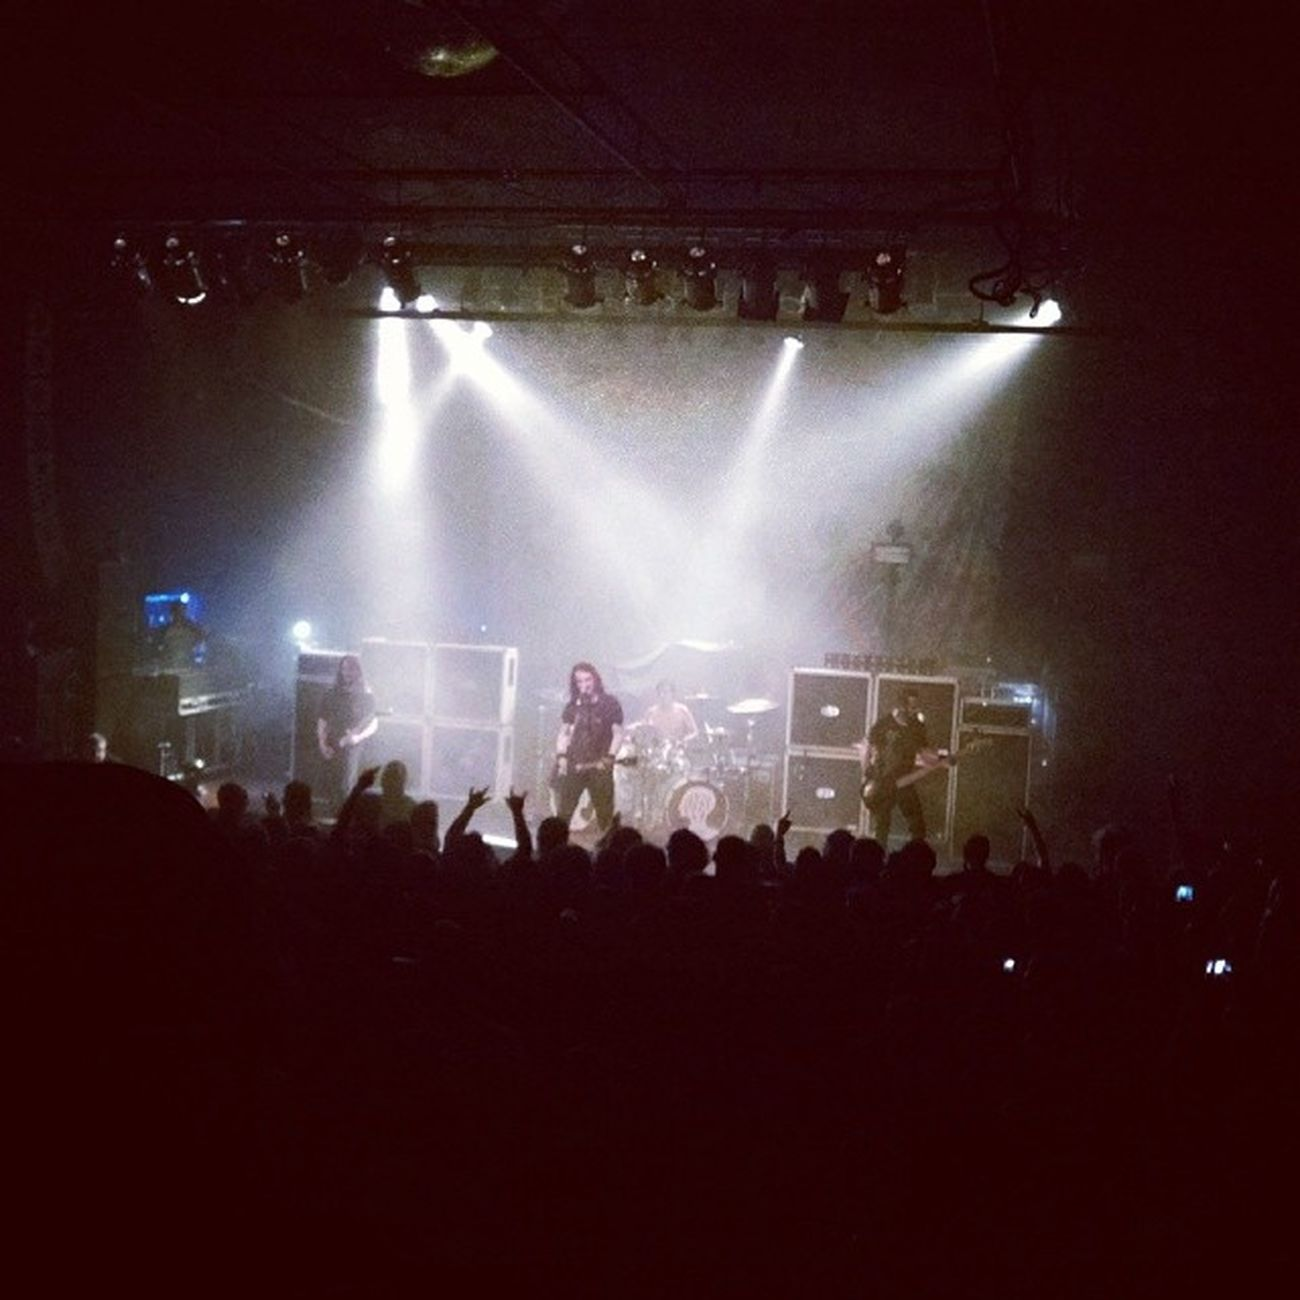 Gojira absolutely dominated last night @townballroom . That may have been the highest energy set I've ever seen. @ablake211